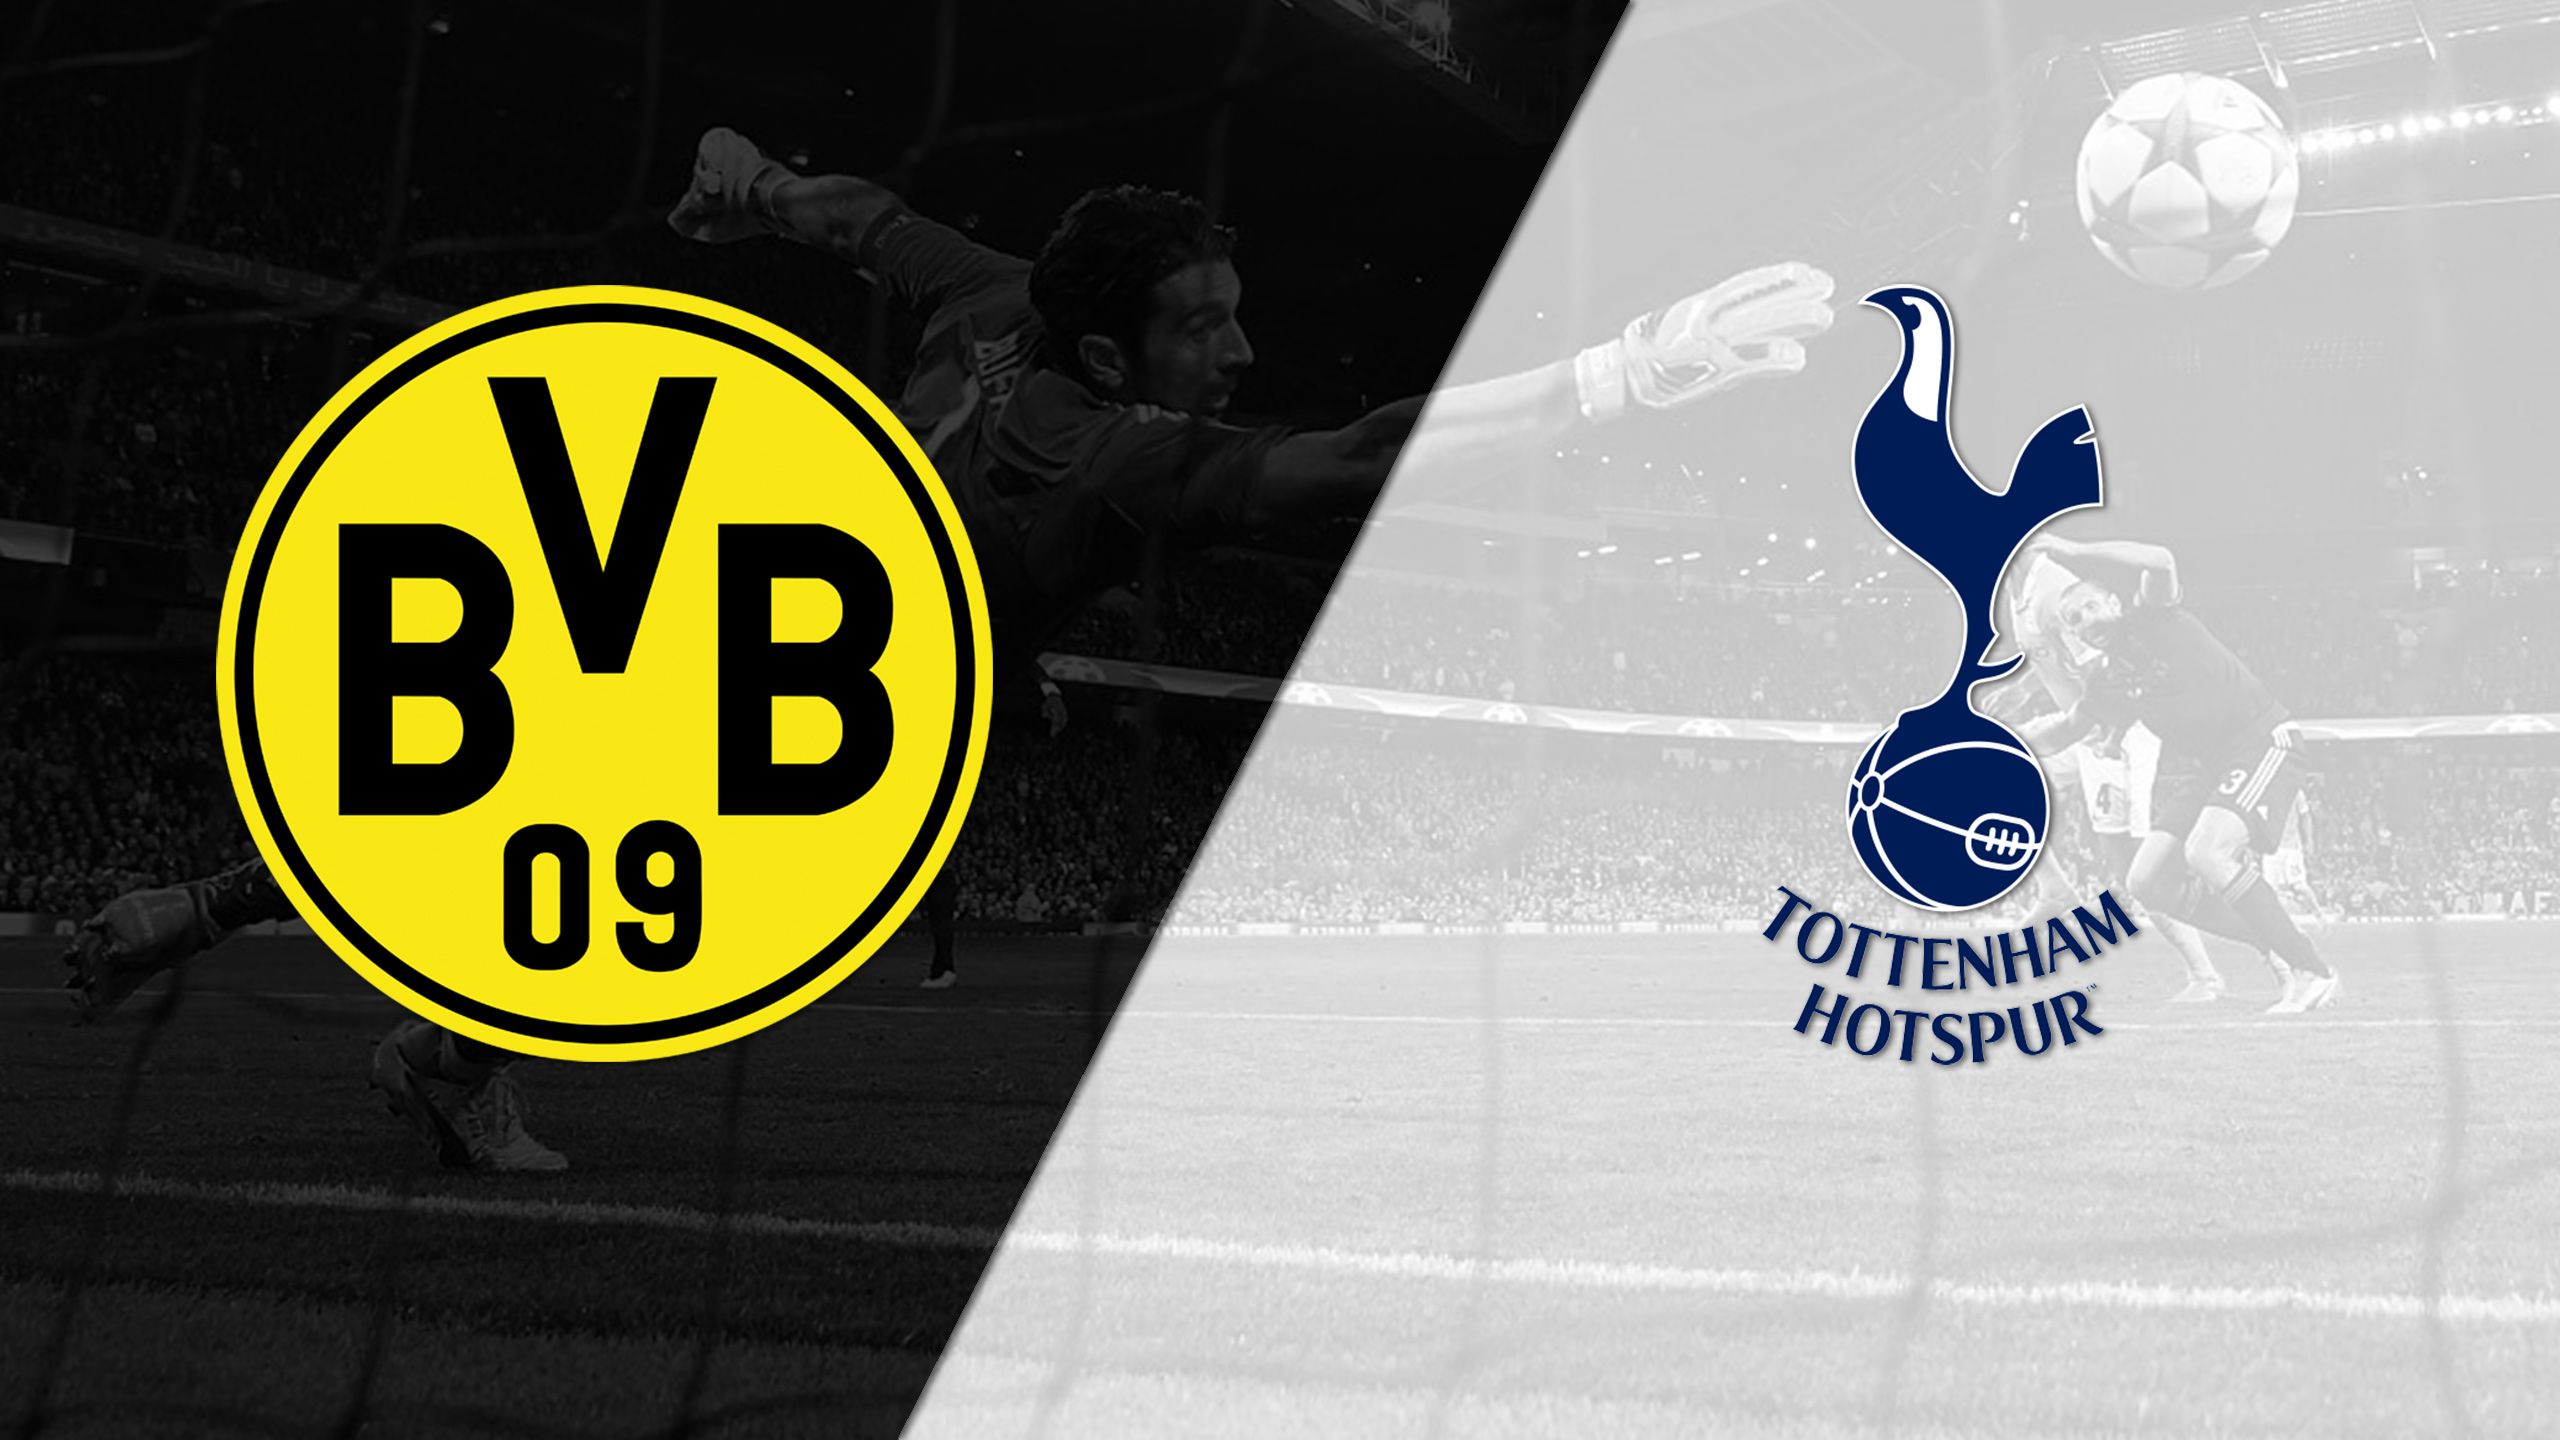 In Spanish - Borussia Dortmund vs. Tottenham Hotspur (Group Stage #5) (UEFA Champions League)